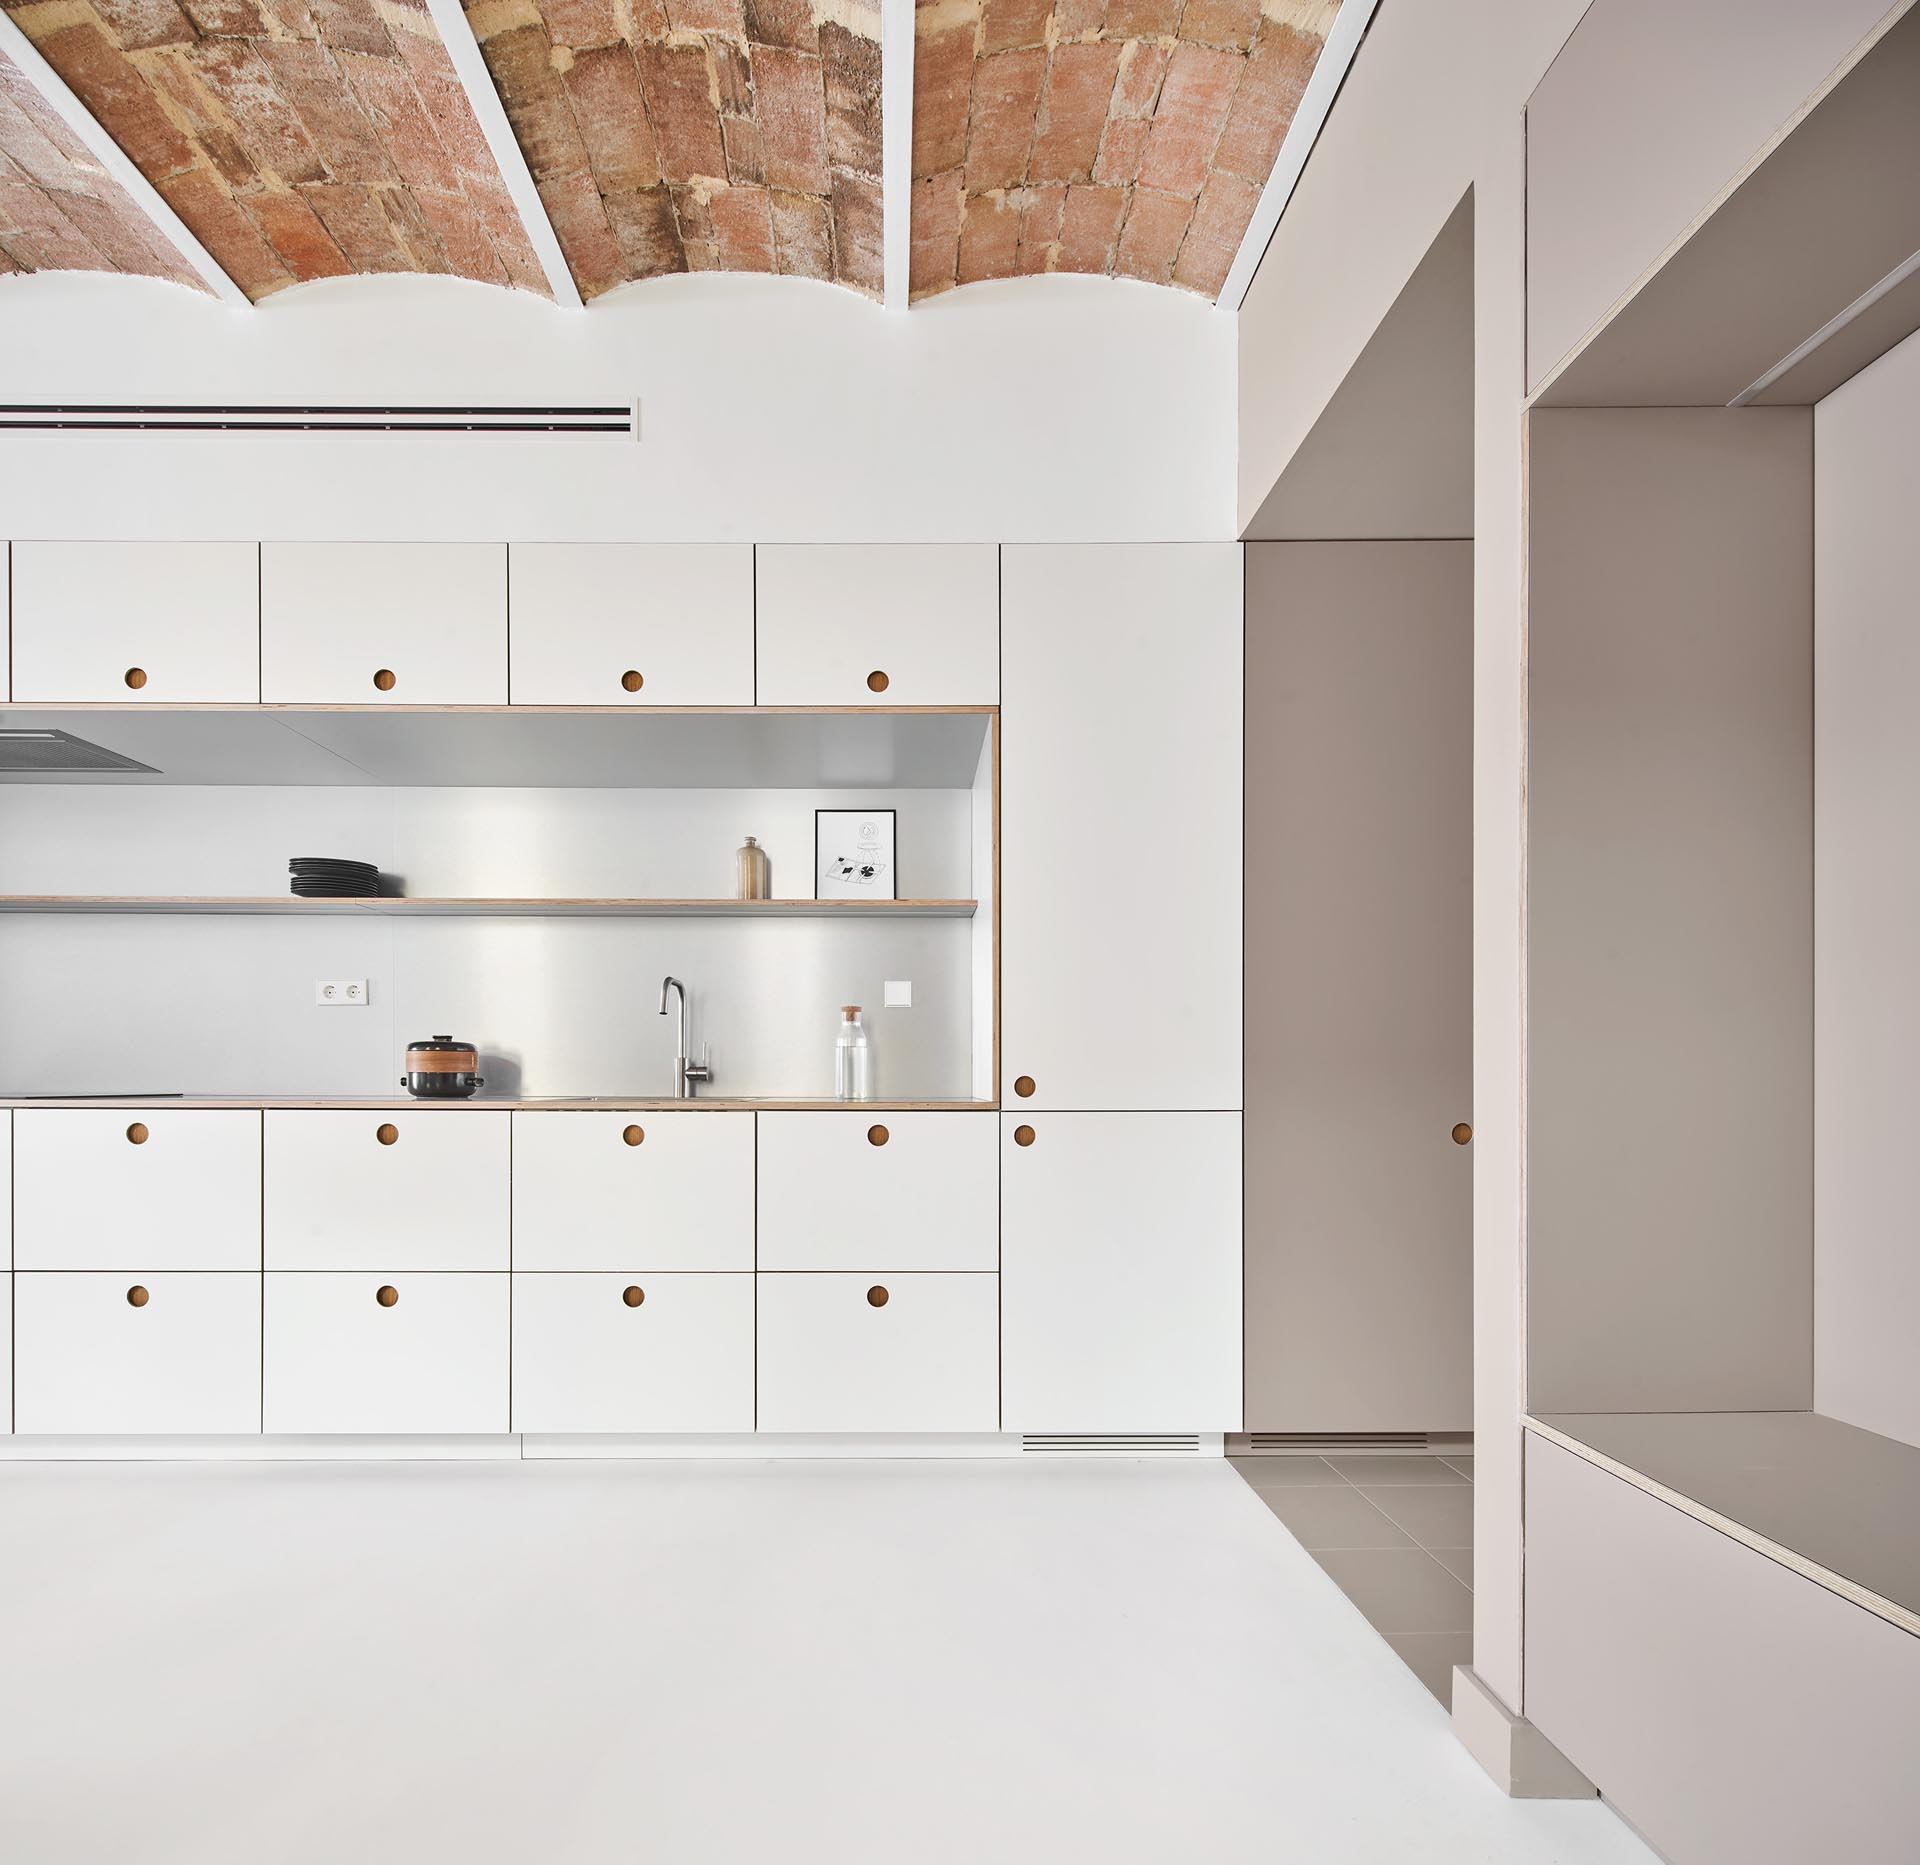 Minimalist kitchen cabinets and drawers with recessed finger pulls.